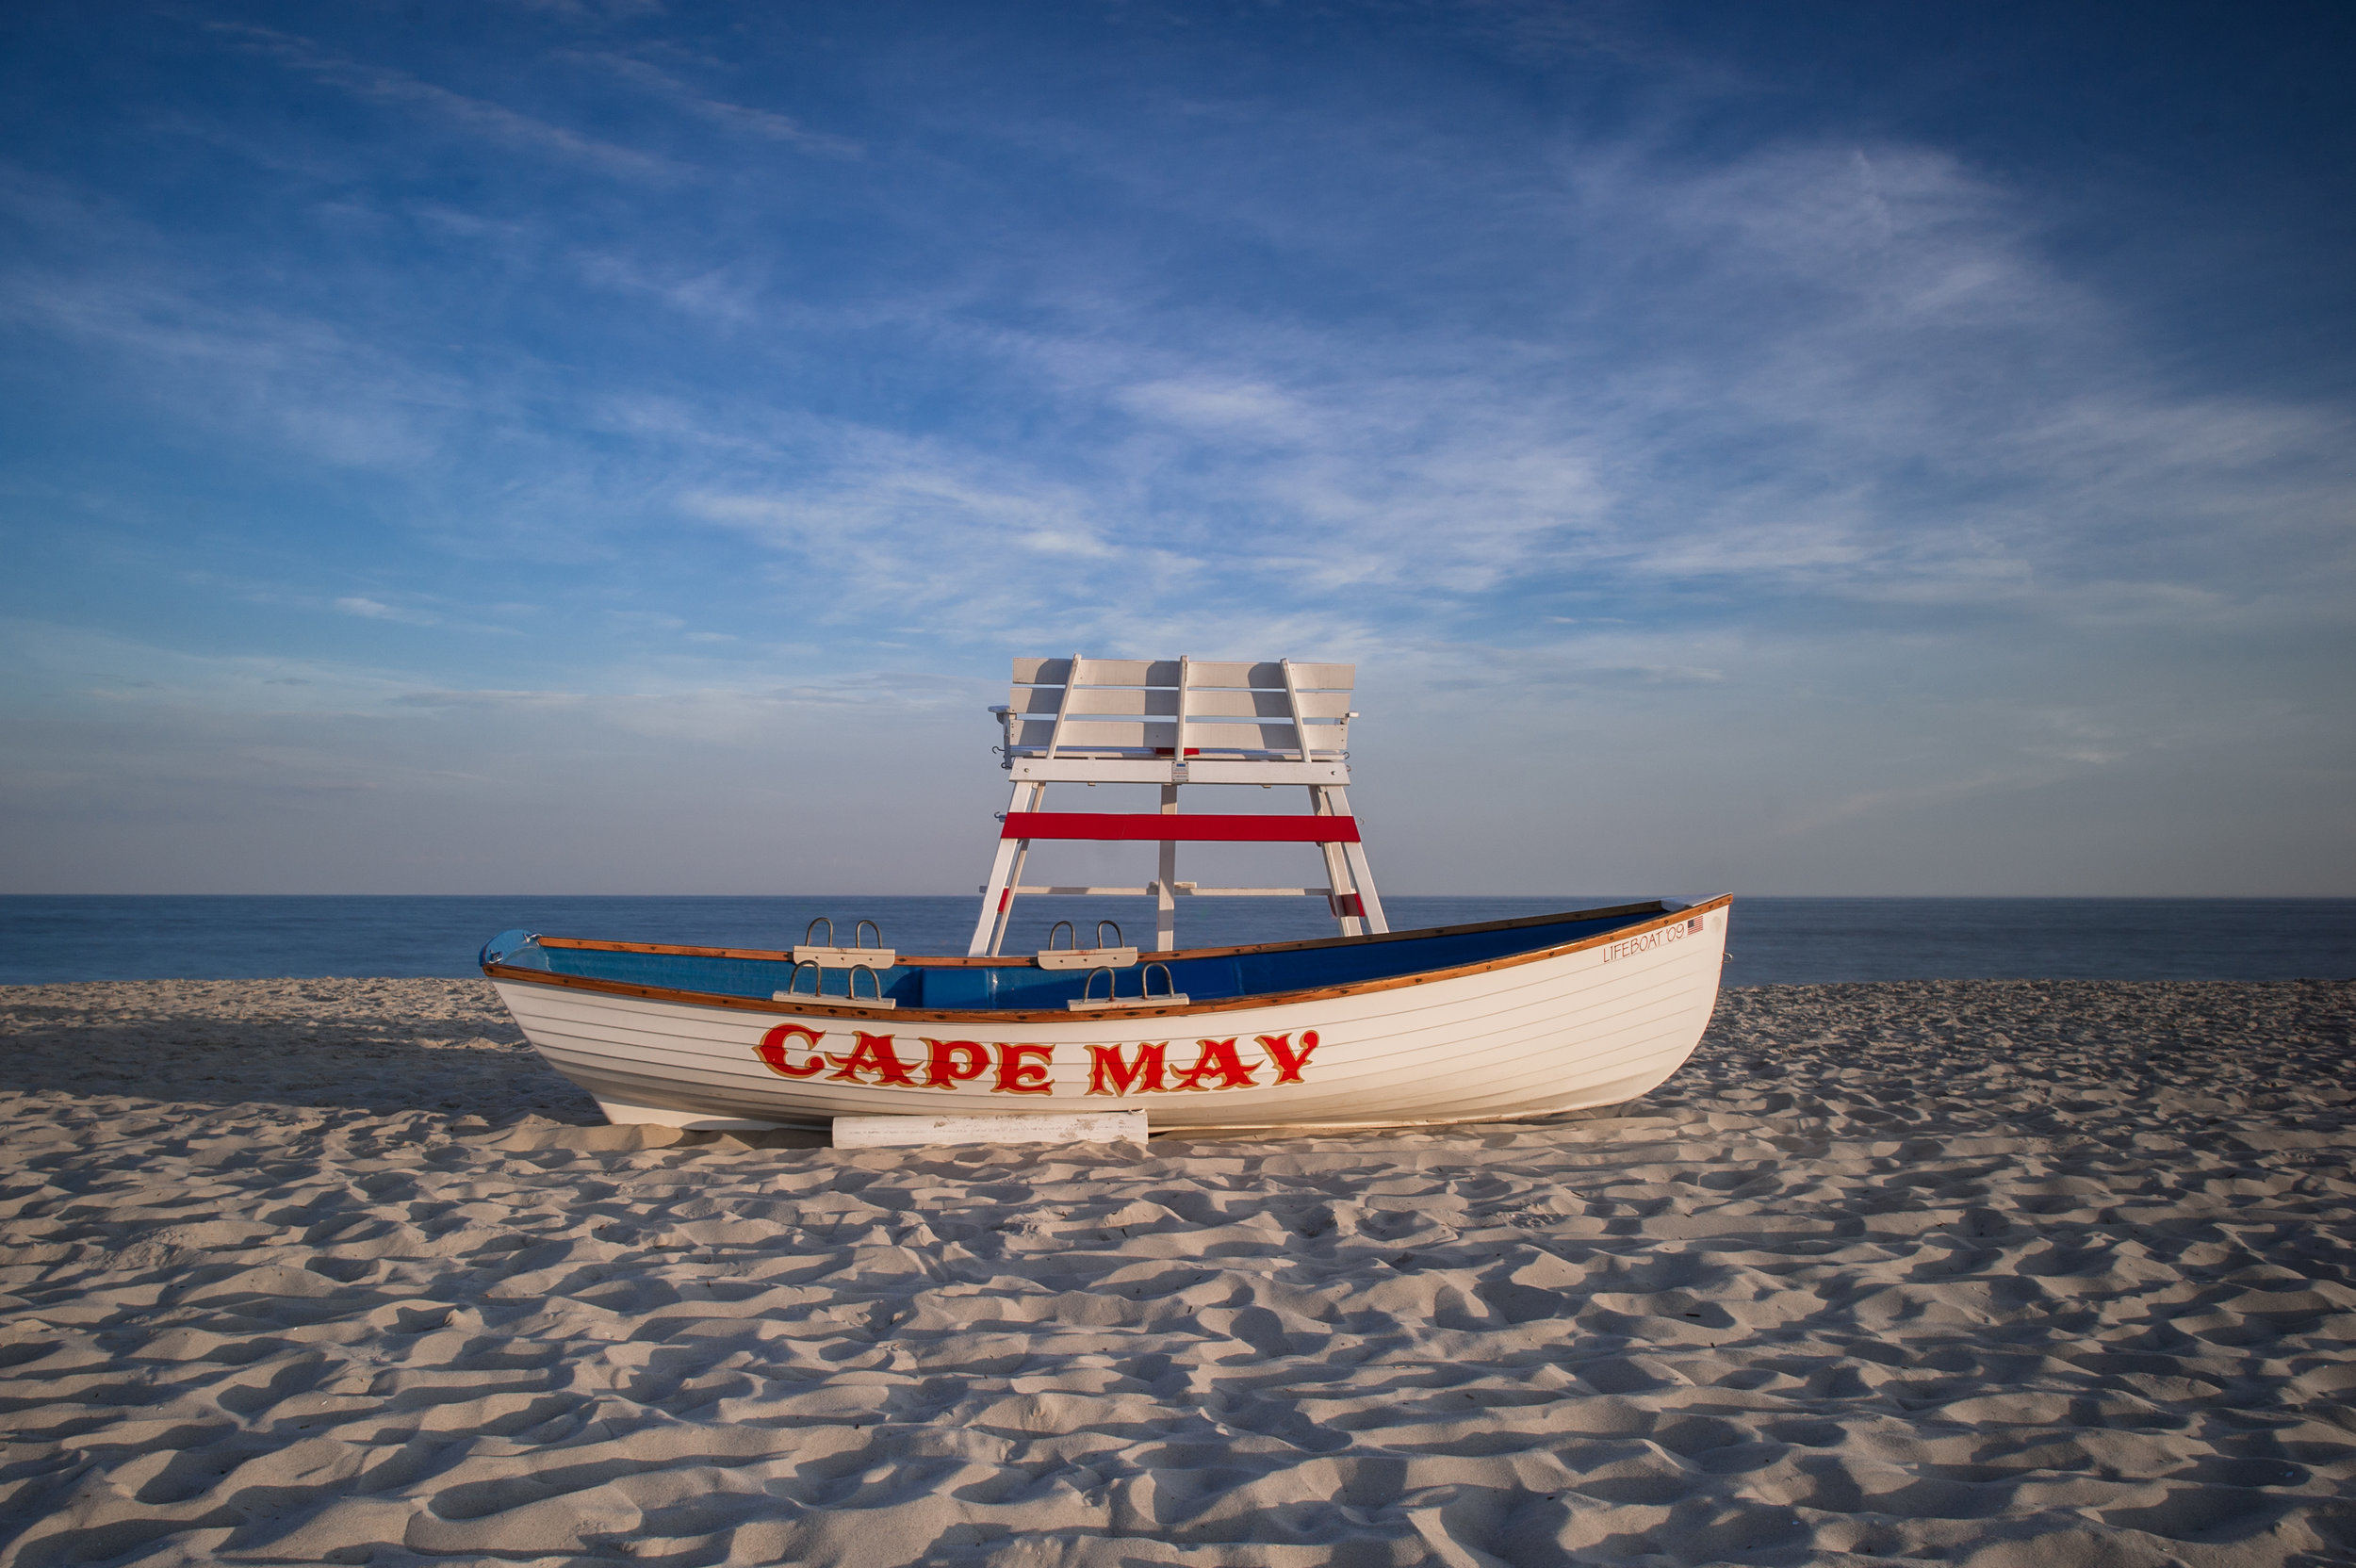 Cape May Beach, Cape May New Jersey